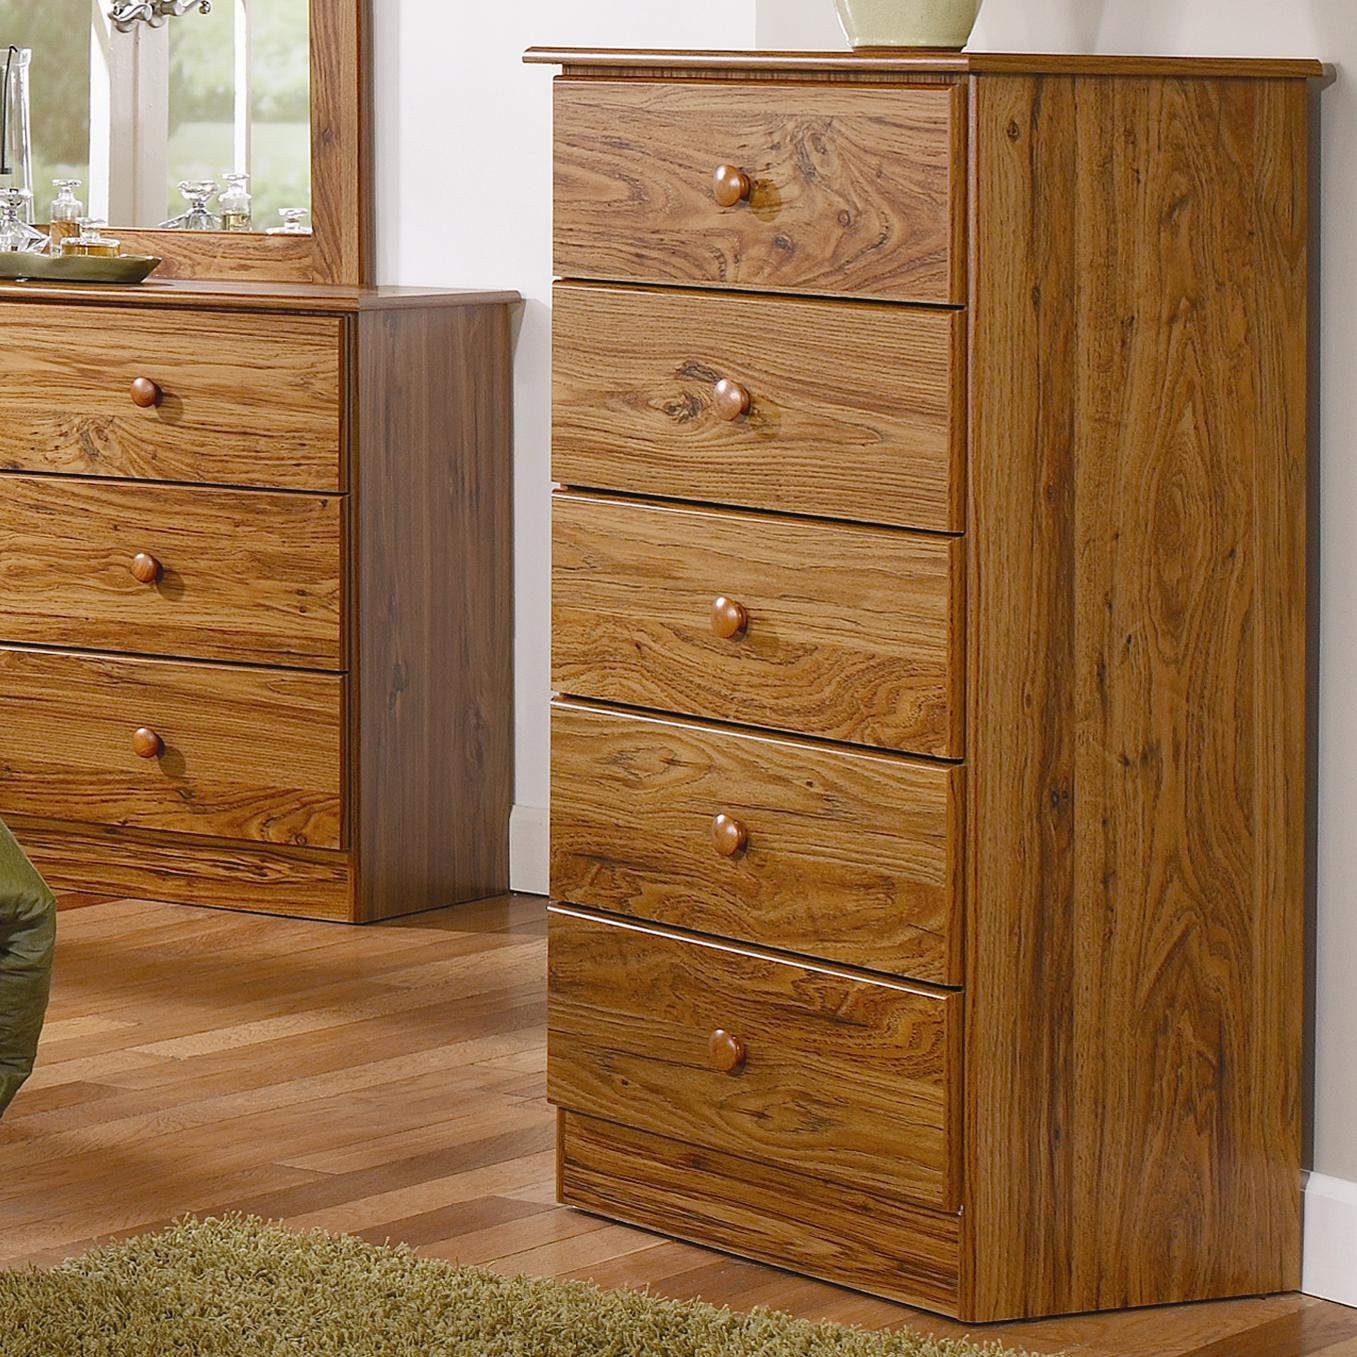 5 Drawer Chest with Roller Glides